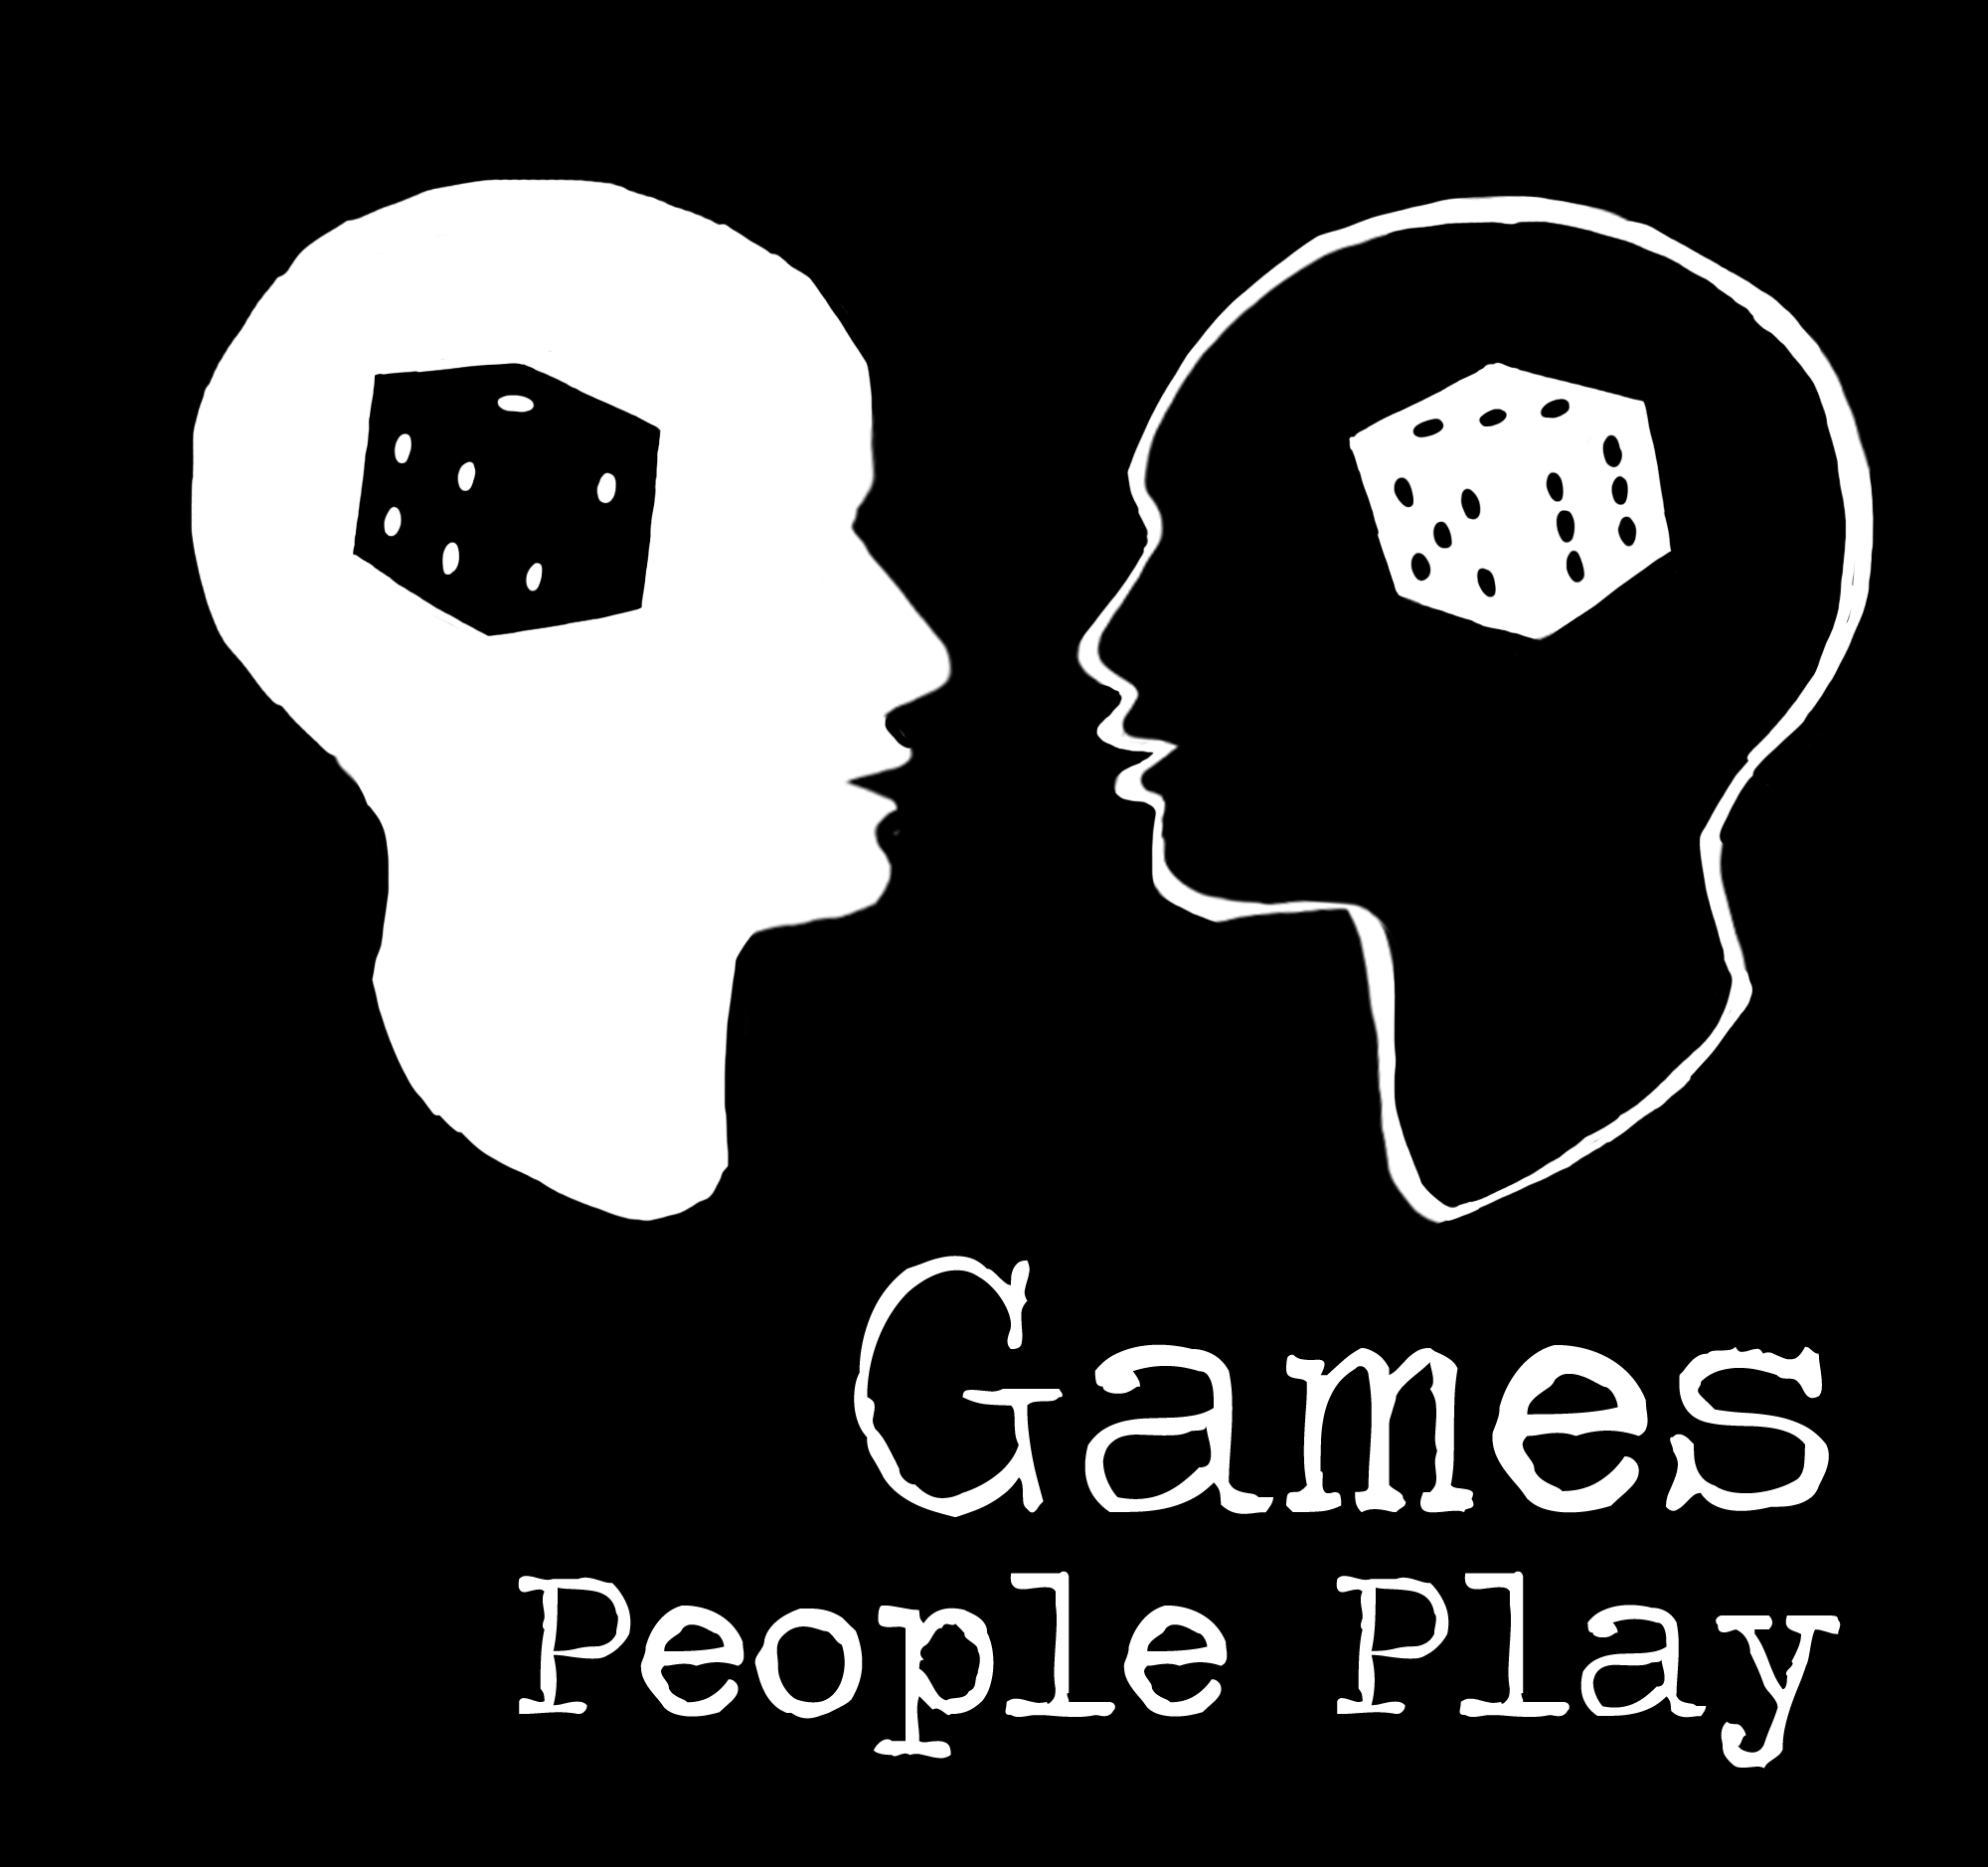 Episode 3: The Making Friends Game